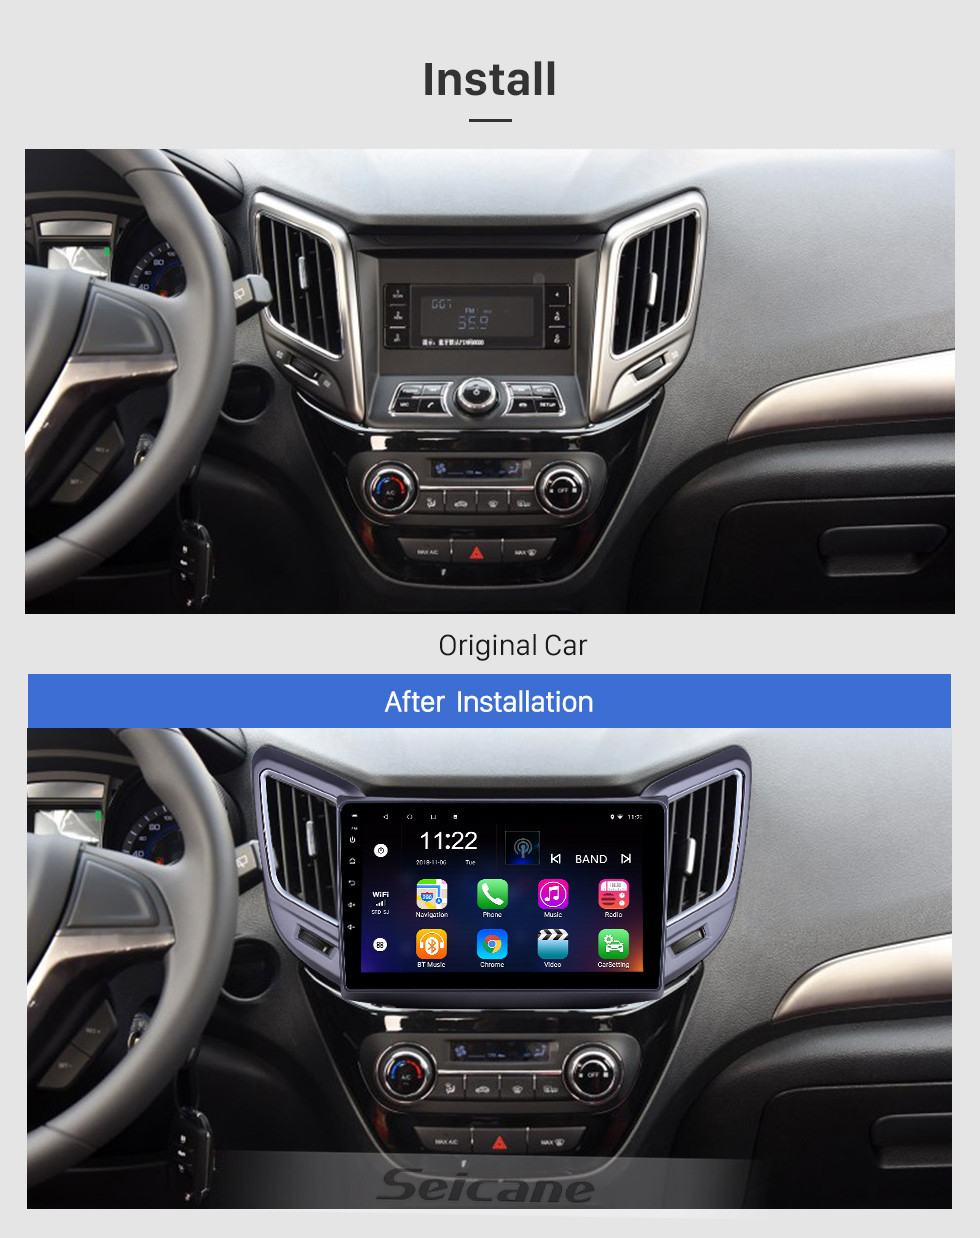 Seicane 9 inch Android 10.0 GPS Navigation Radio for 2016-2019 Changan CS15 with Bluetooth WiFi HD Touchscreen support Carplay DVR OBD